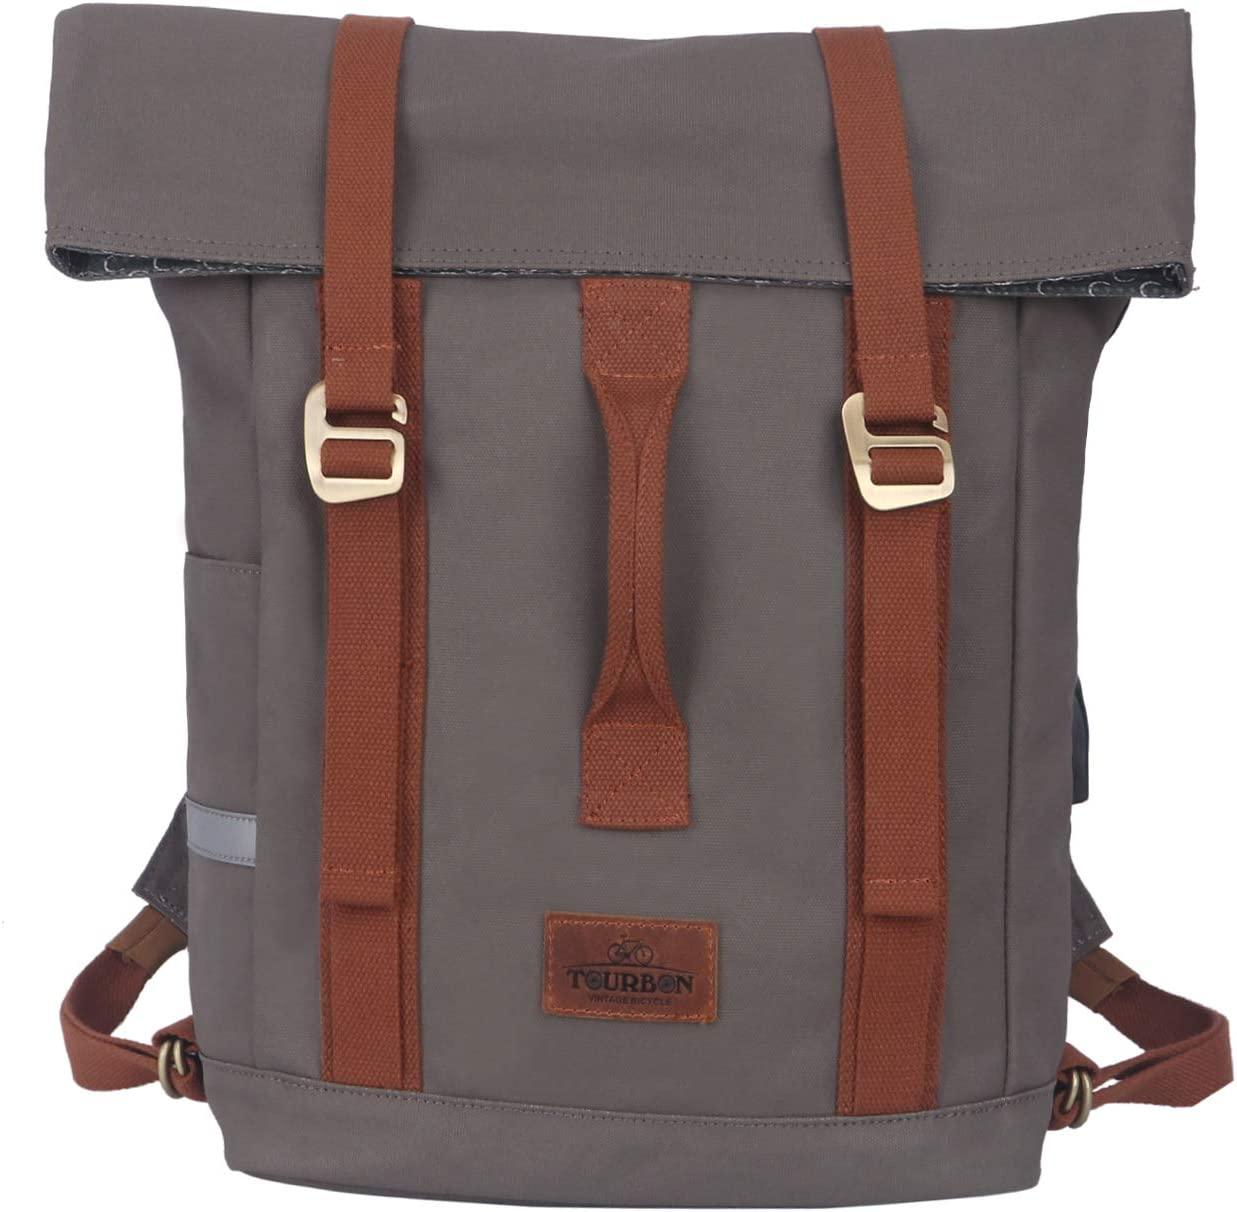 TOURBON Water-Resistant Canvas Laptop Bag Bike Messenger Pannier Backpack Shoulder Briefcase